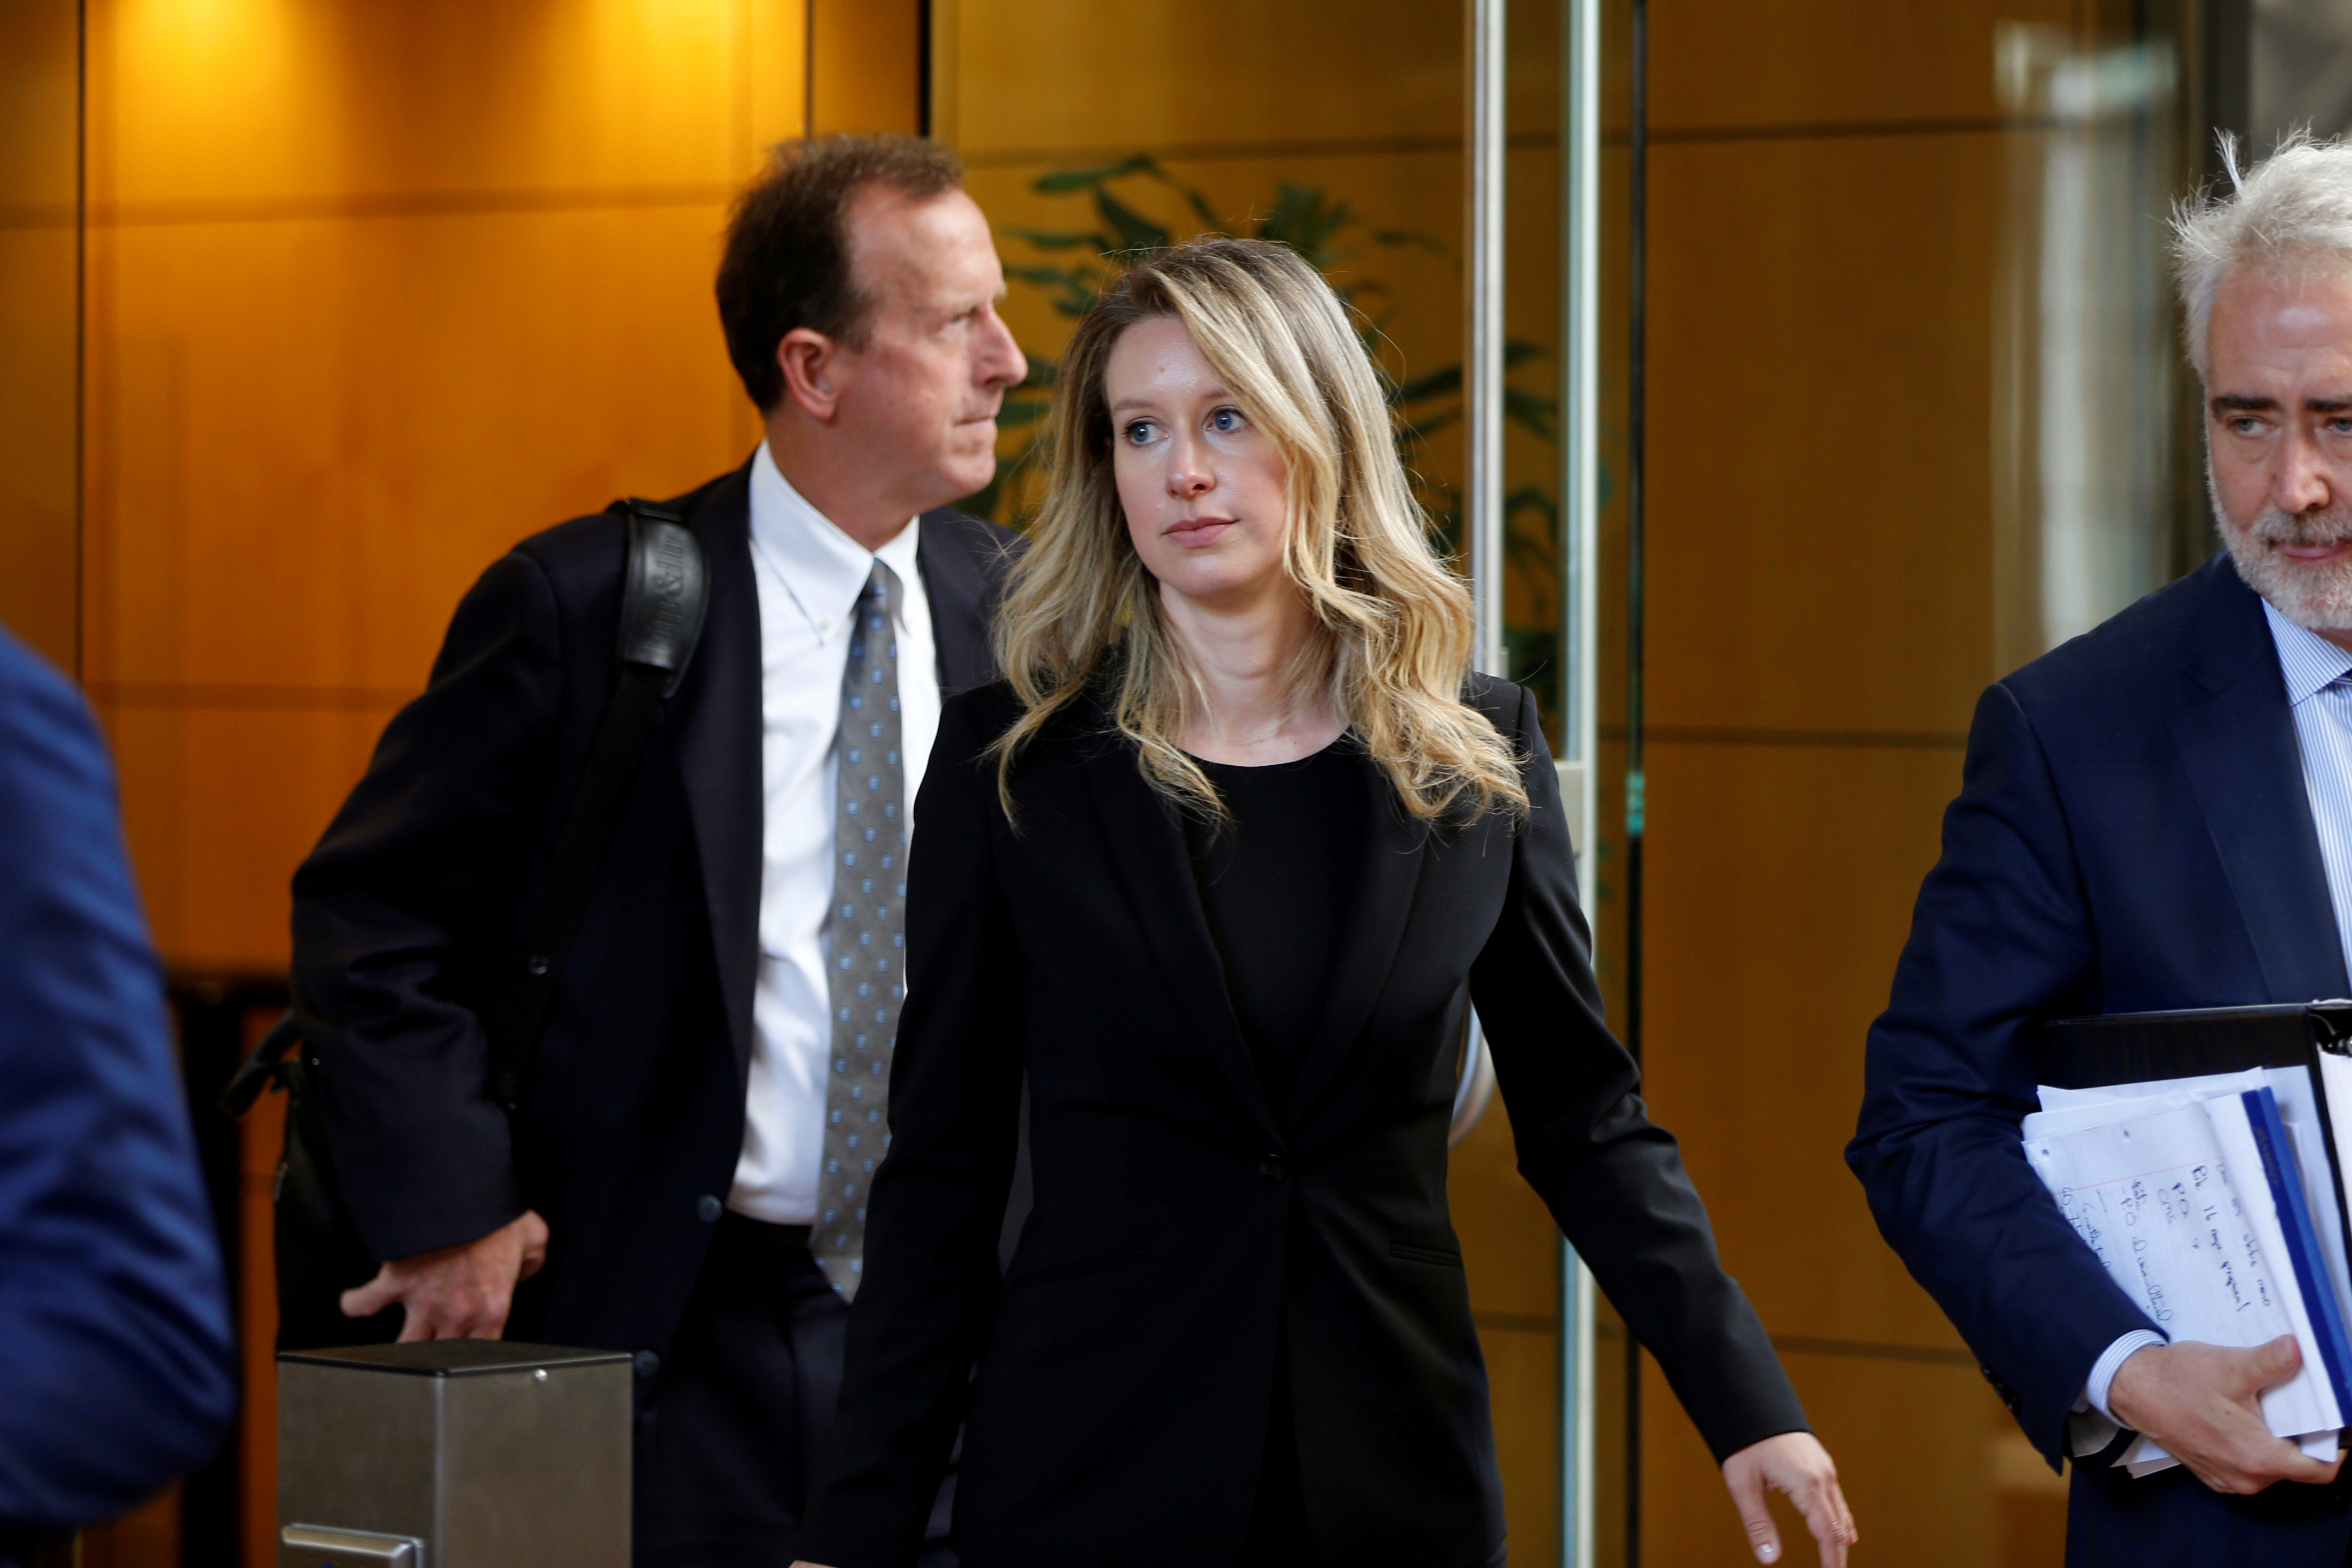 Former Theranos CEO Elizabeth Holmes leaves after a hearing at a federal court in San Jose, California, U.S., July 17, 2019.  REUTERS/Stephen Lam